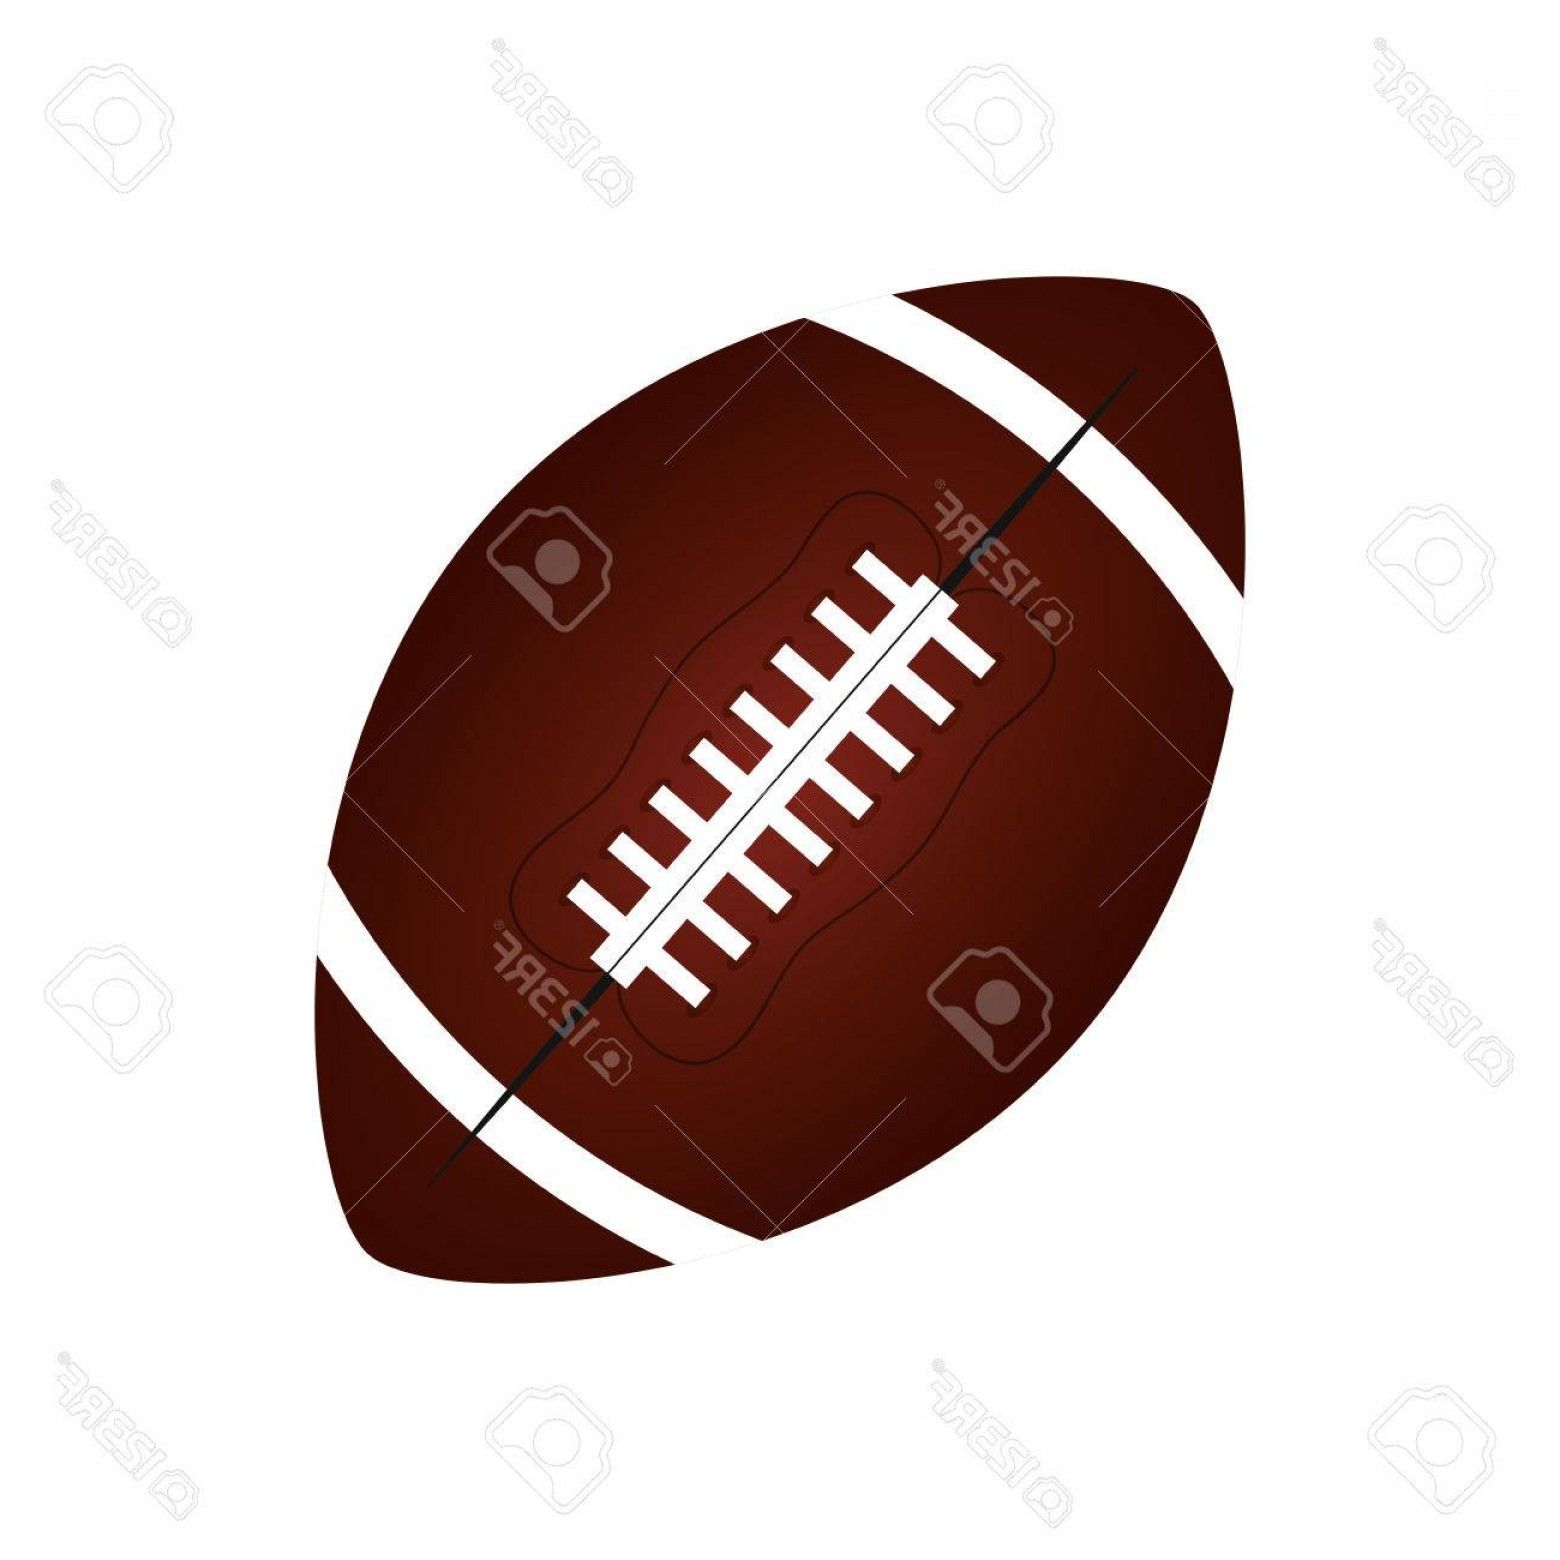 High Res Vector American Football: Photostock Vector American Football Balloon Isolated Icon Vector Illustration Design